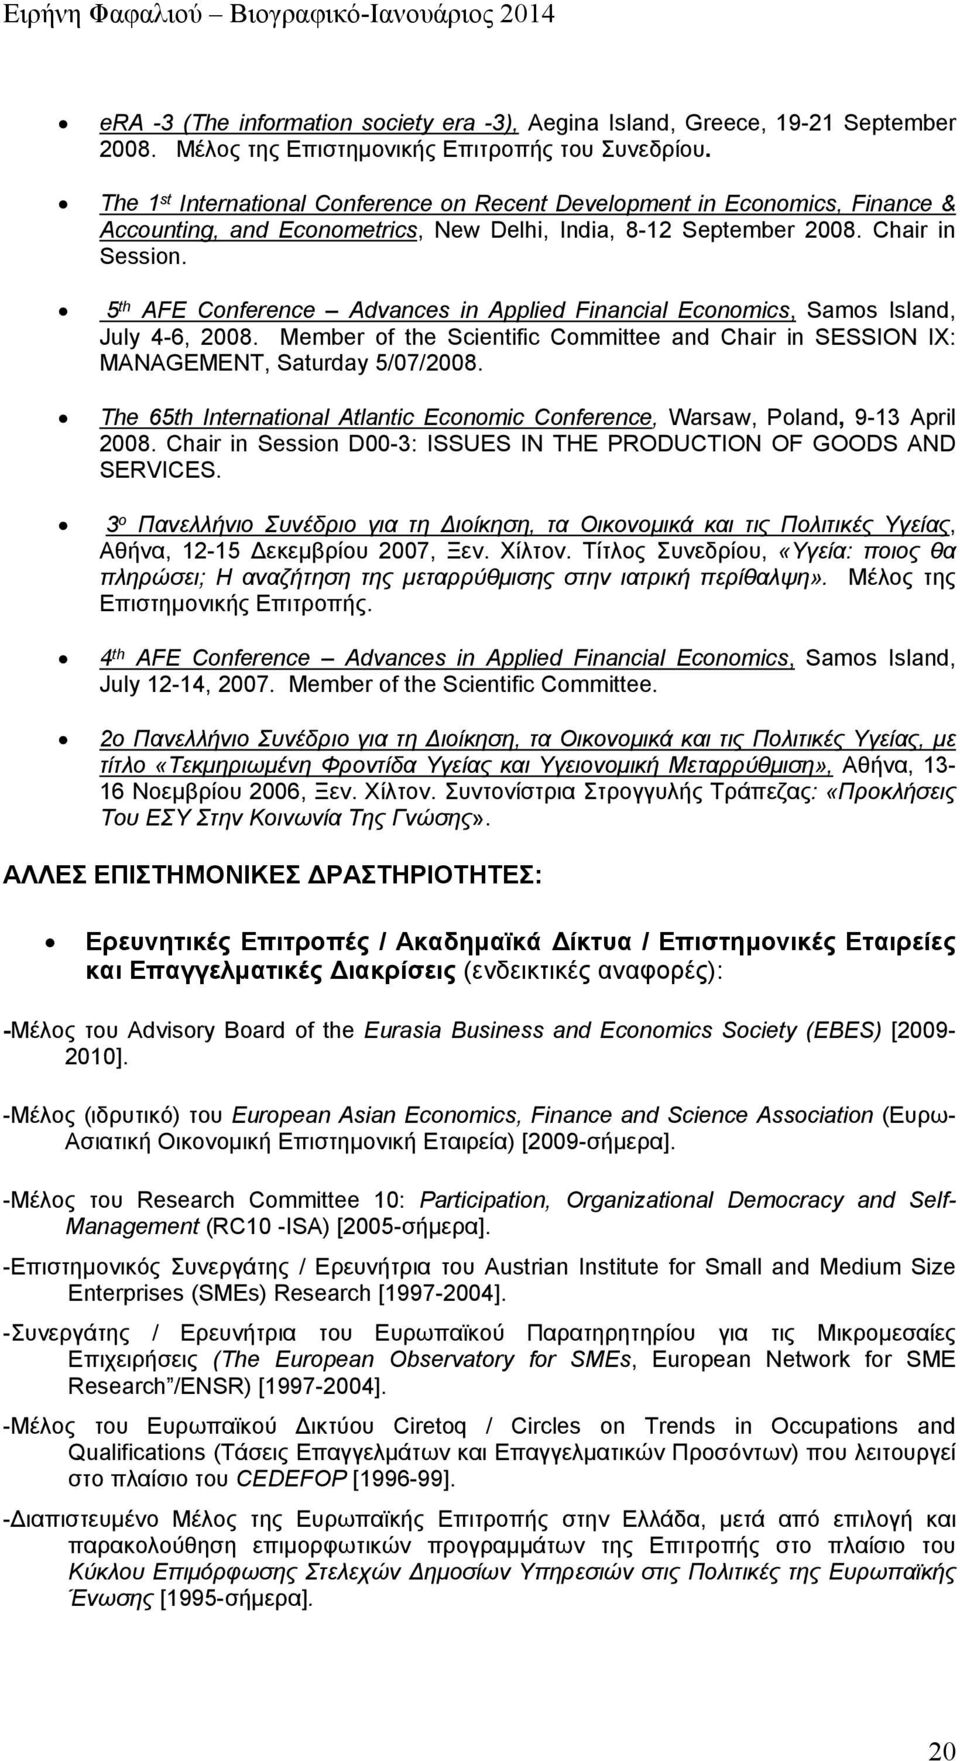 5 th AFE Conference Advances in Applied Financial Economics, Samos Island, July 4-6, 2008. Member of the Scientific Committee and Chair in SESSION IX: MANAGEMENT, Saturday 5/07/2008.